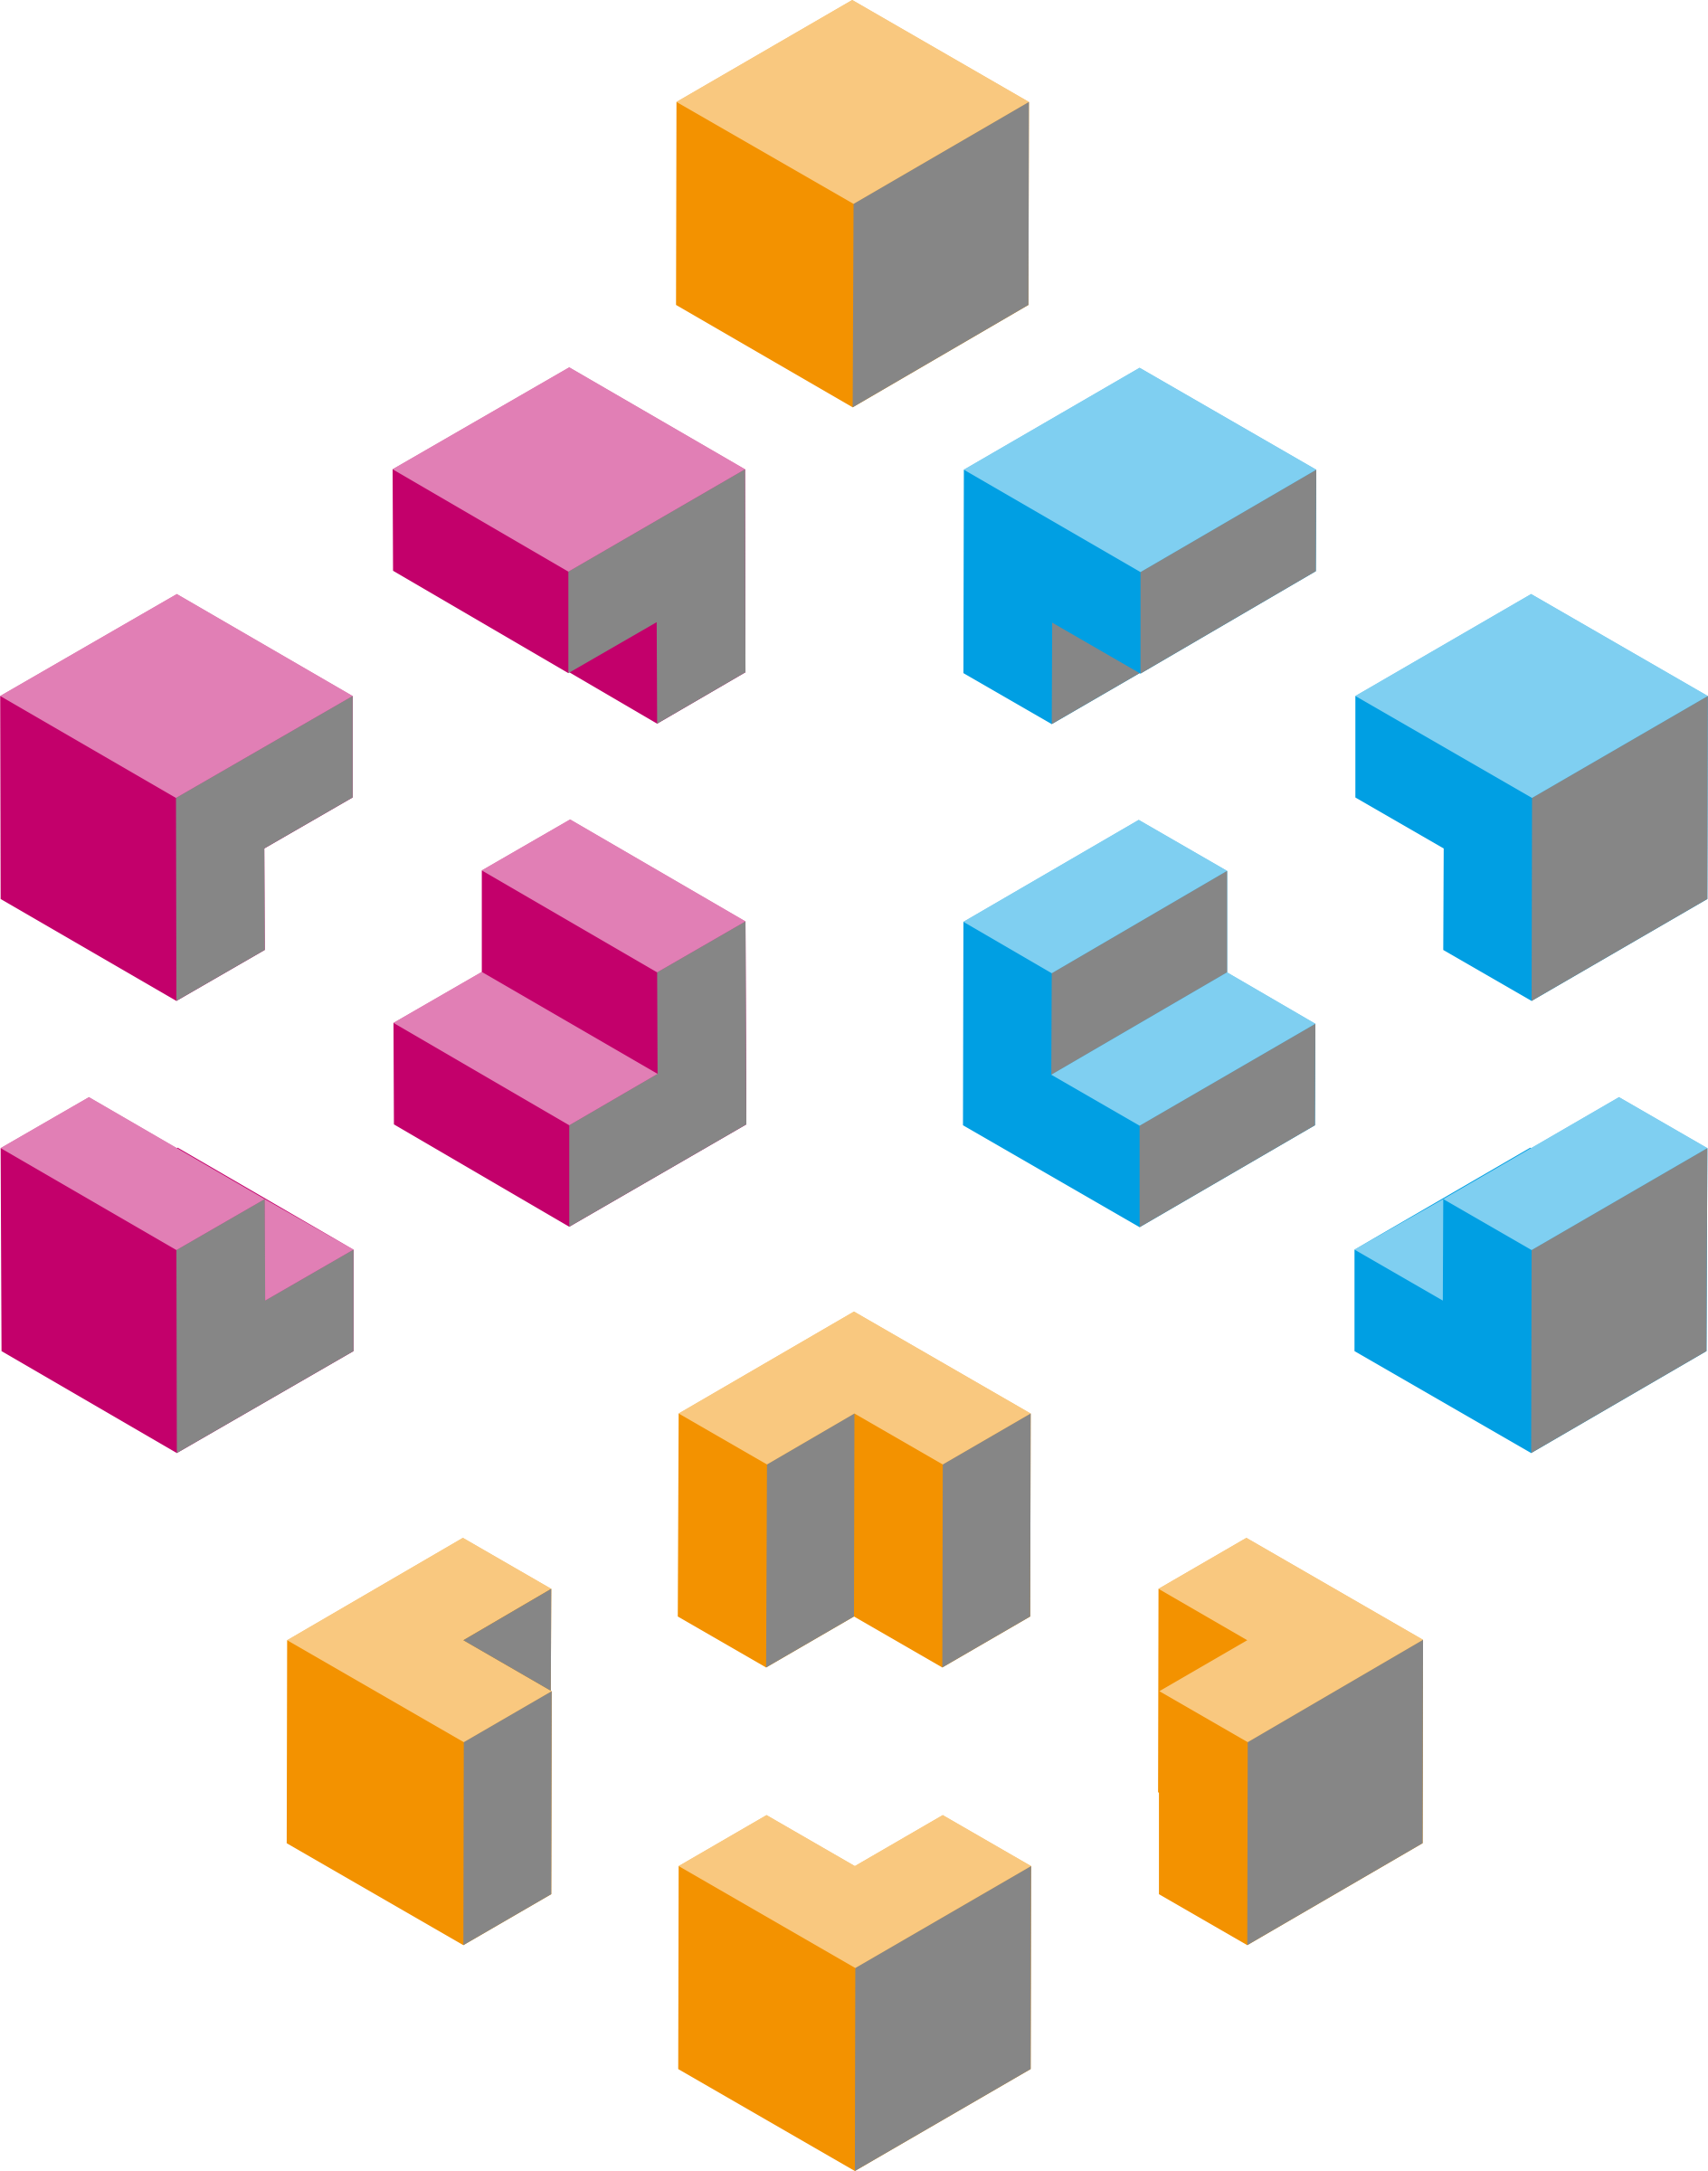 Isometric shapes 1 - cubes by gramzon